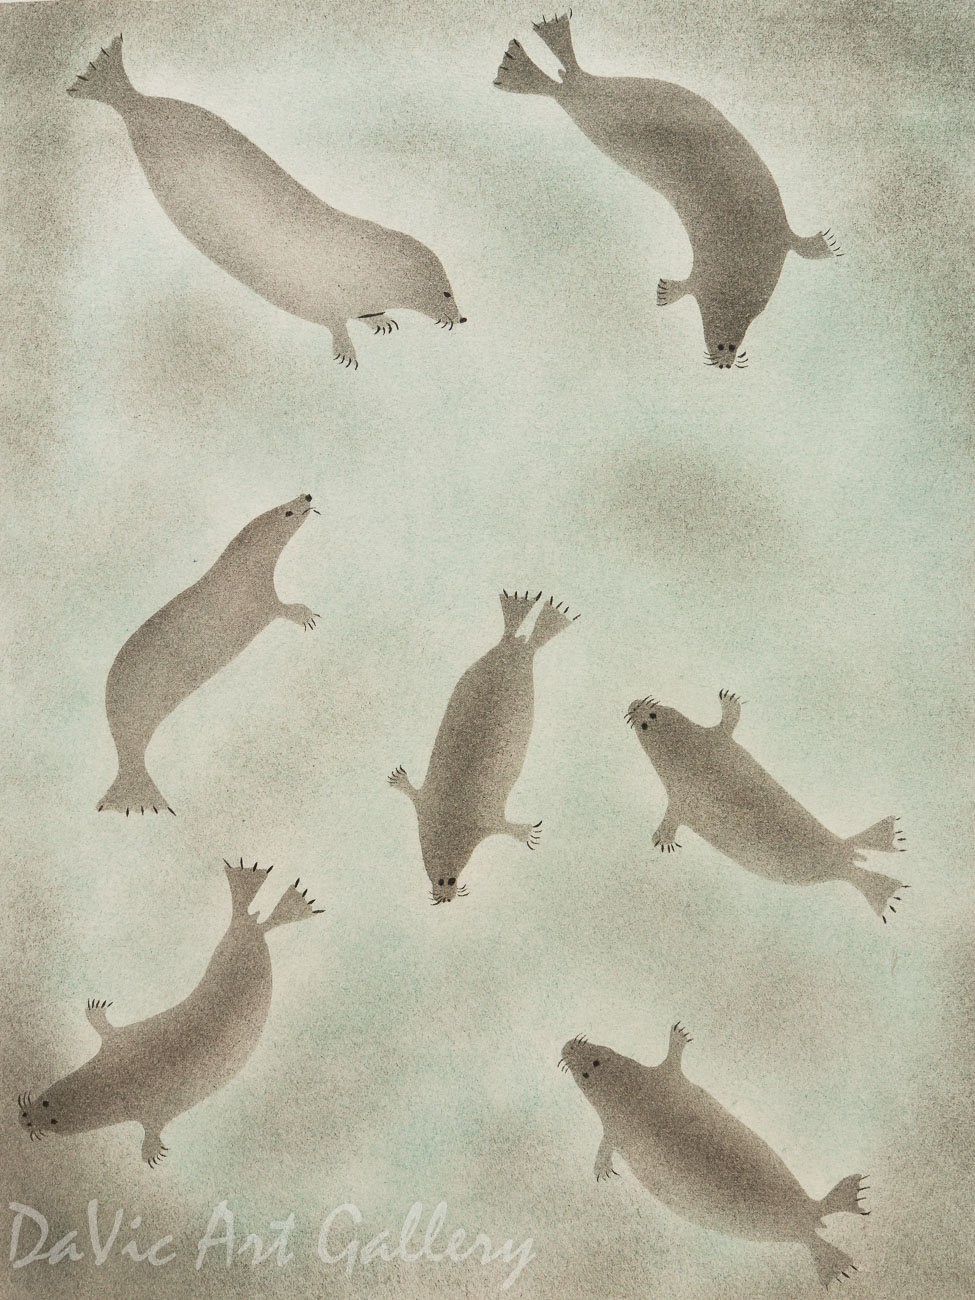 'Gathering of Seals' by Enookie Akulukjuk - Inuit - Pangnirtung 2001